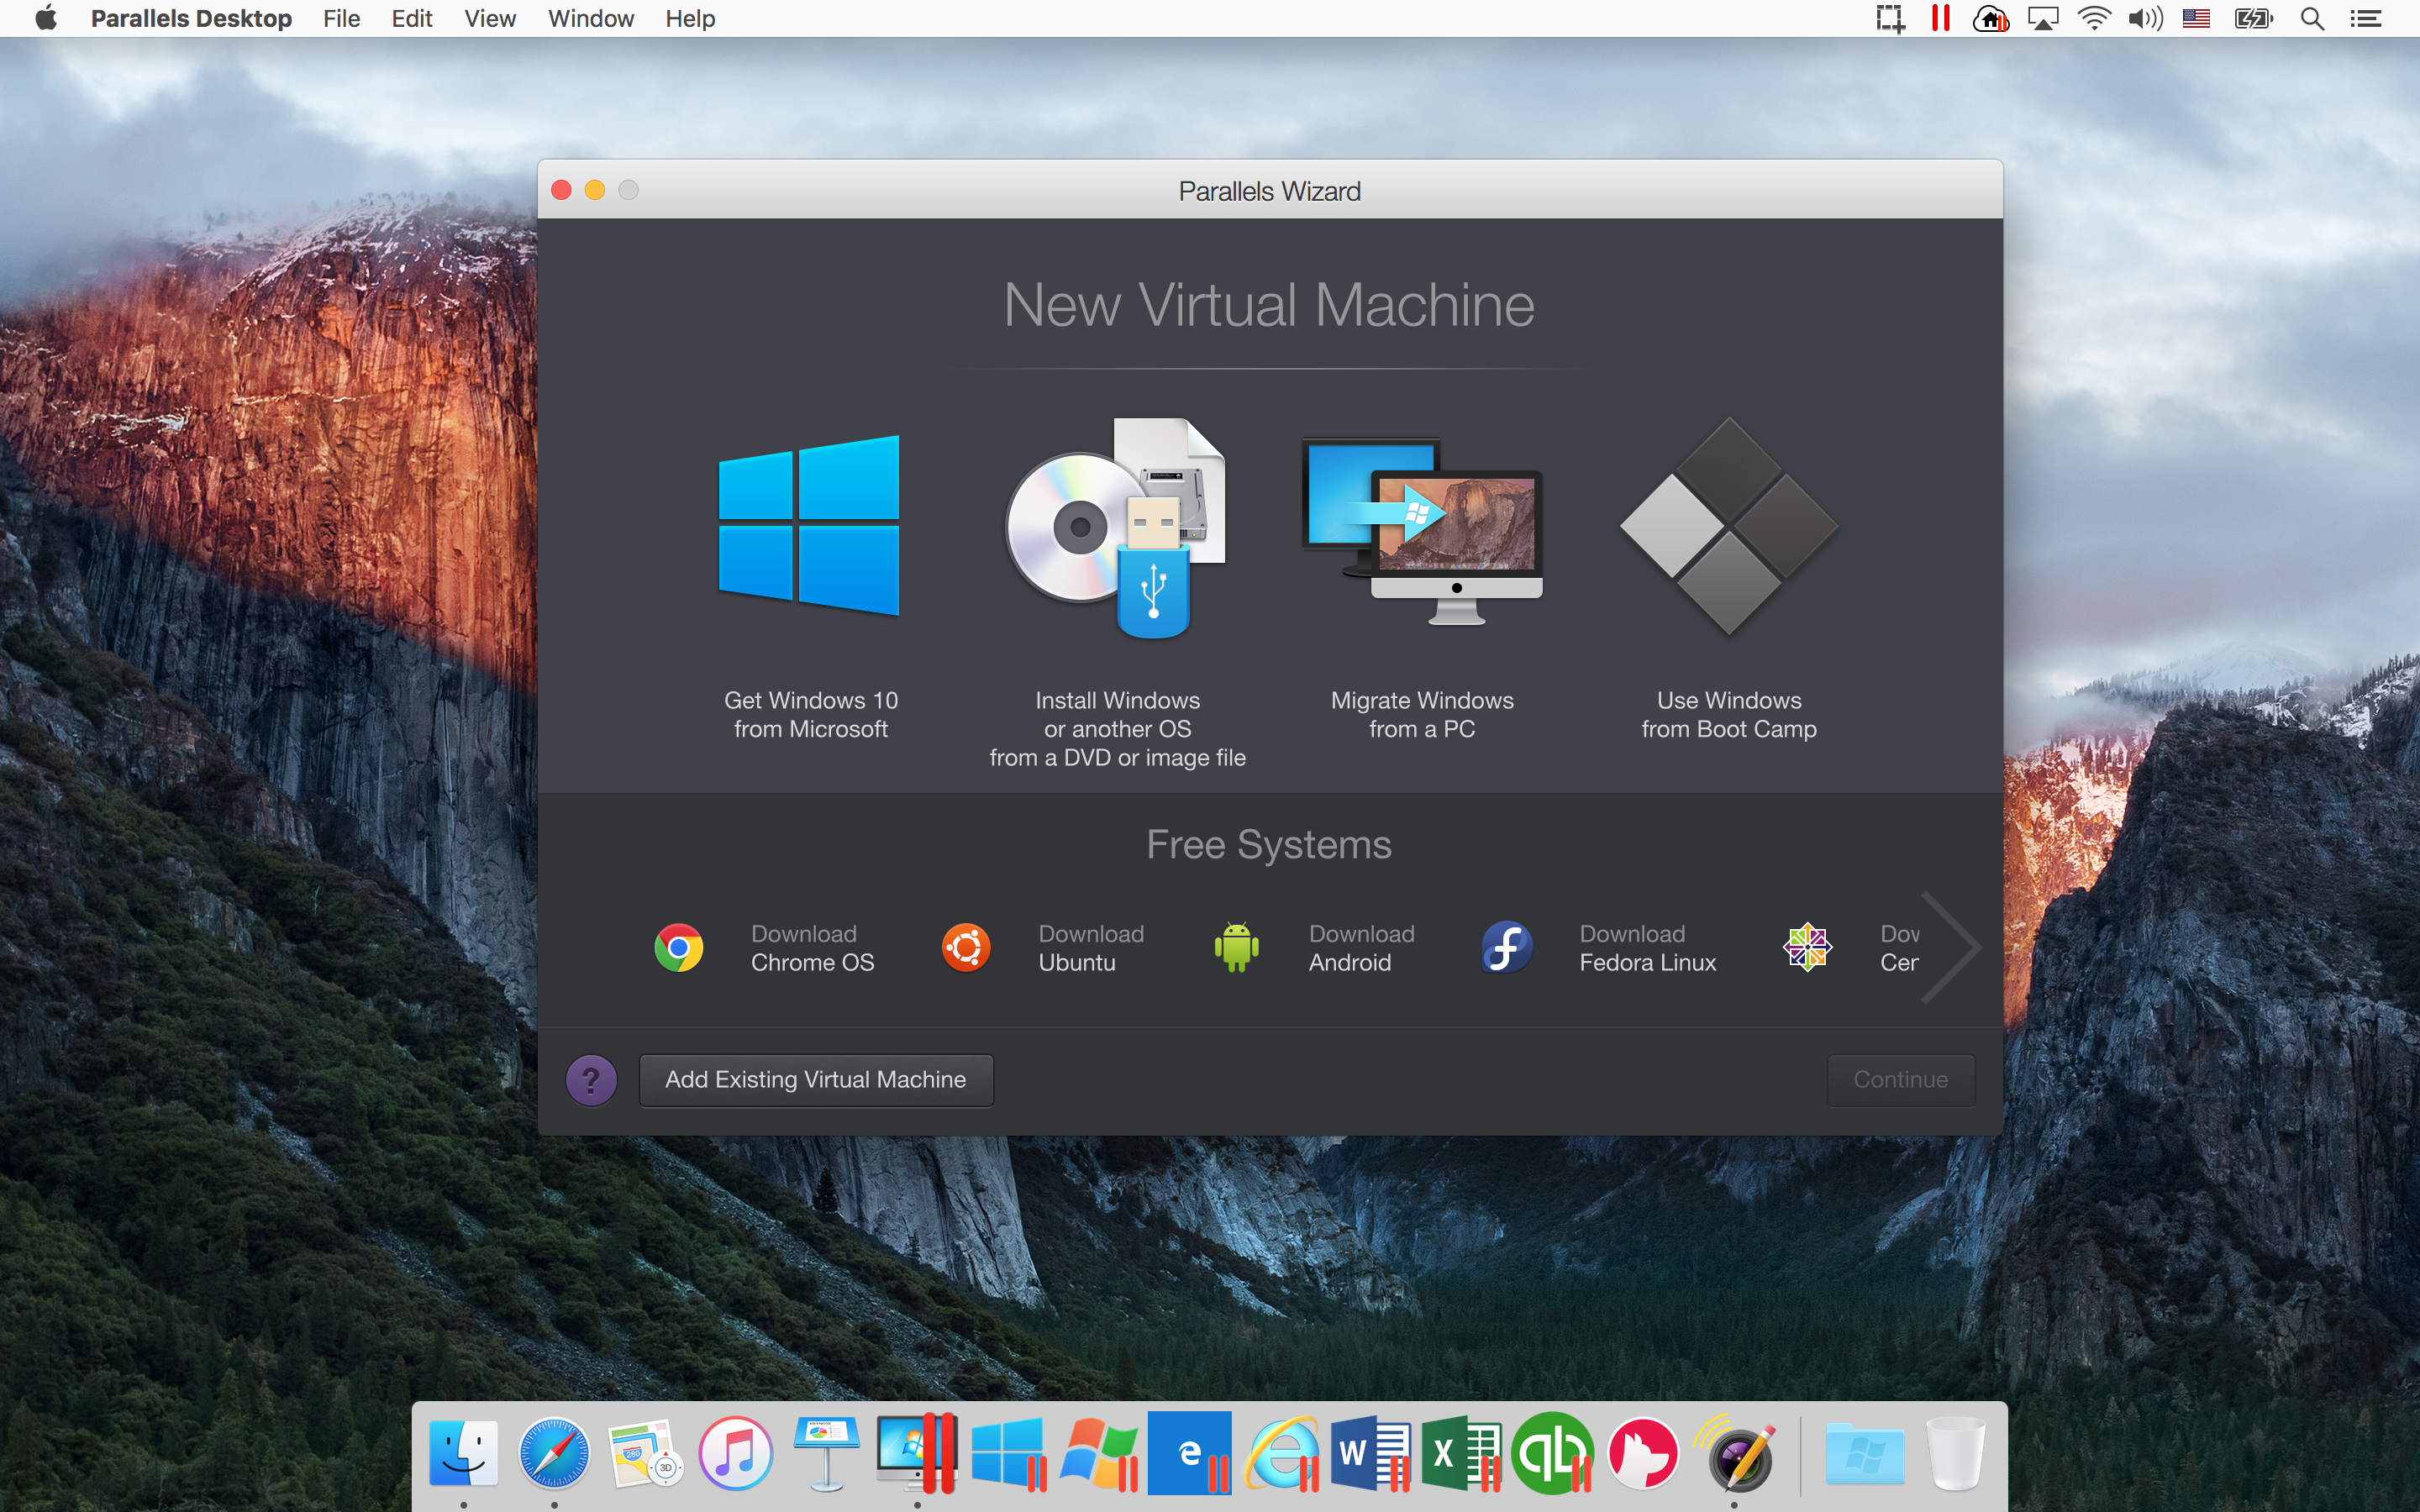 a screenshot of sierra running in the background and the parallels desktop wizard in the foreground